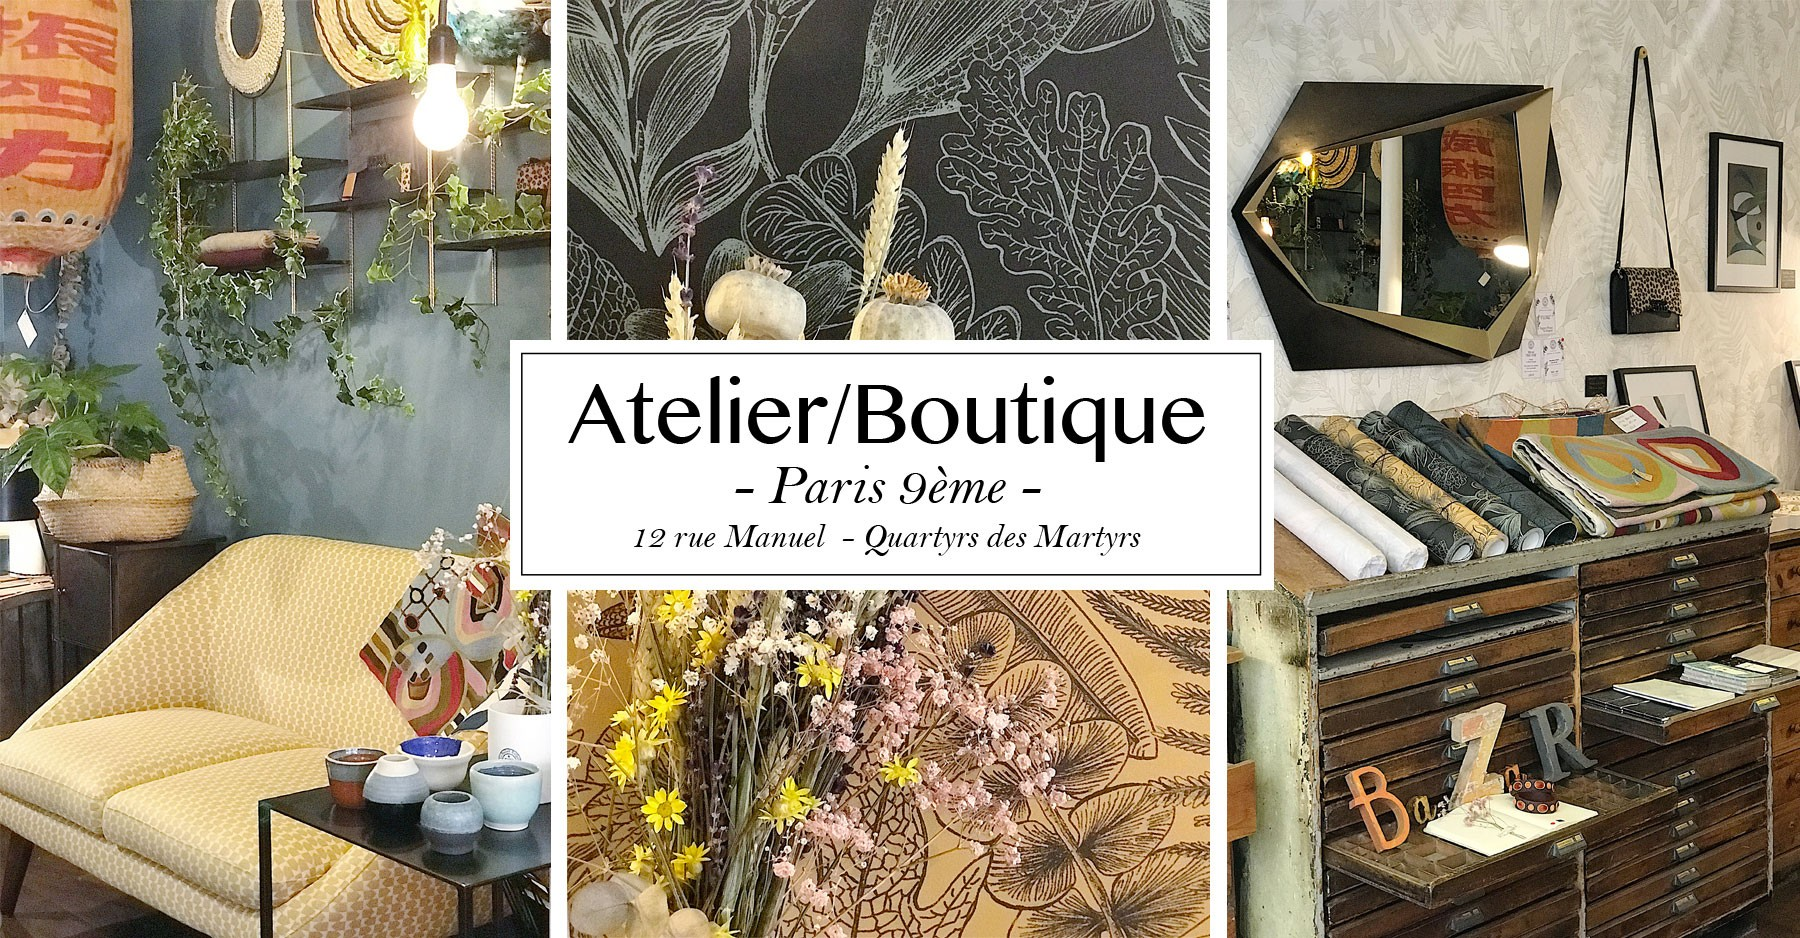 Atelier Boutique Le Bazar Exquis Paris 9